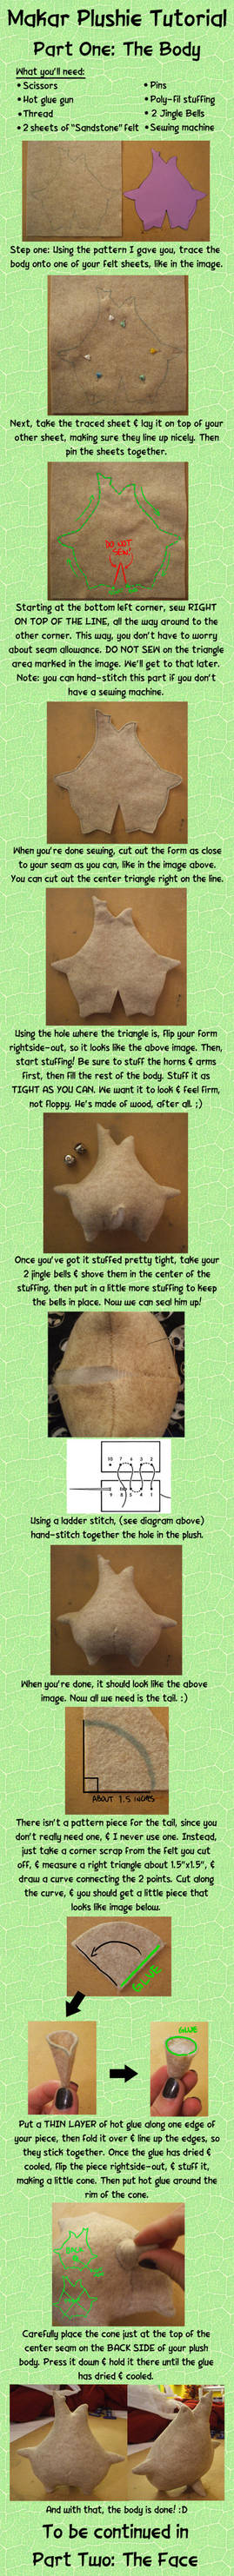 Makar Plushie Tutorial Part One: The Body by Red-Flare